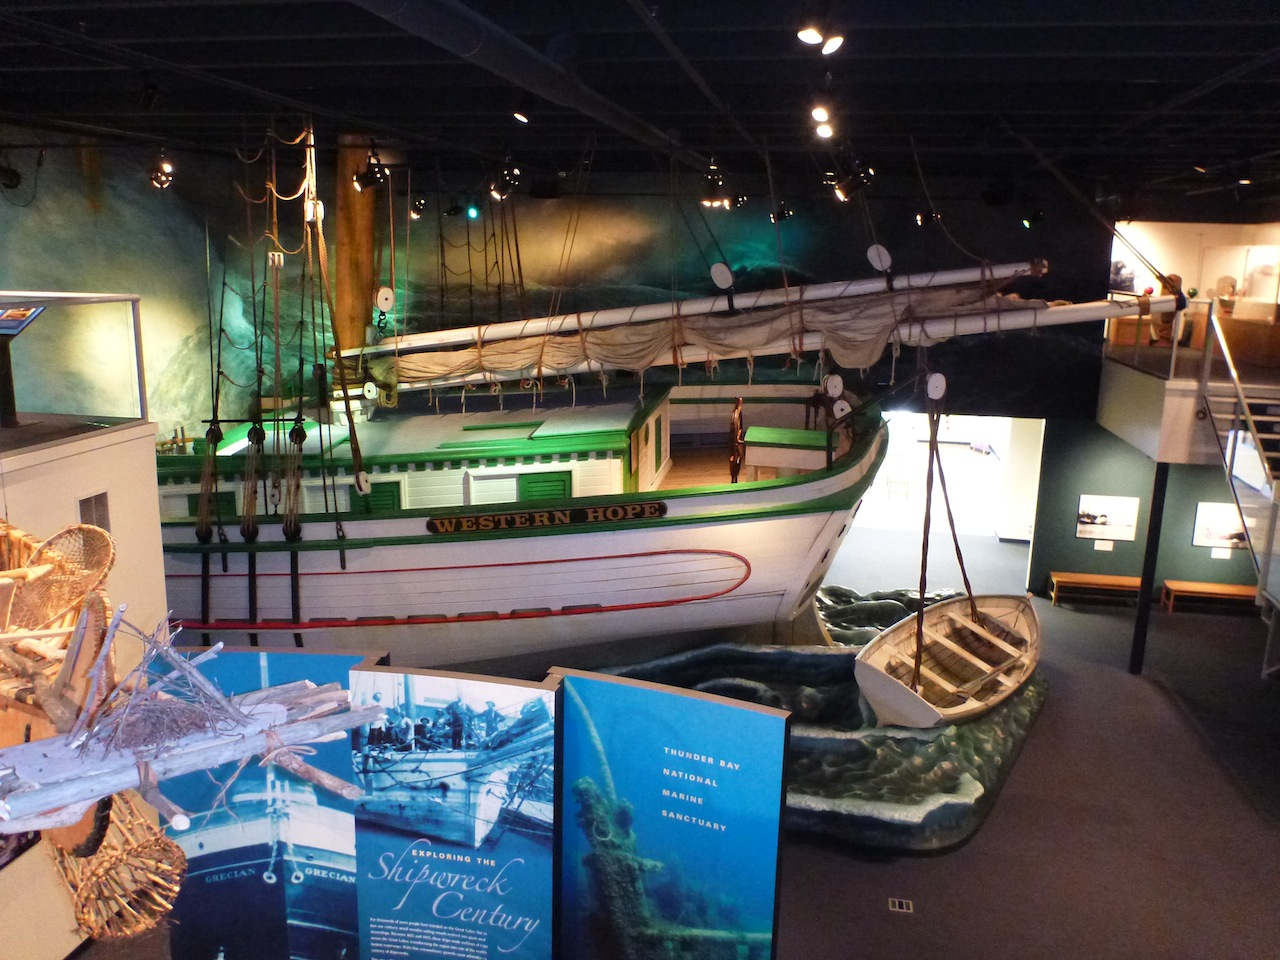 Inside The Thunder Bay National Marine Sanctuary Museum